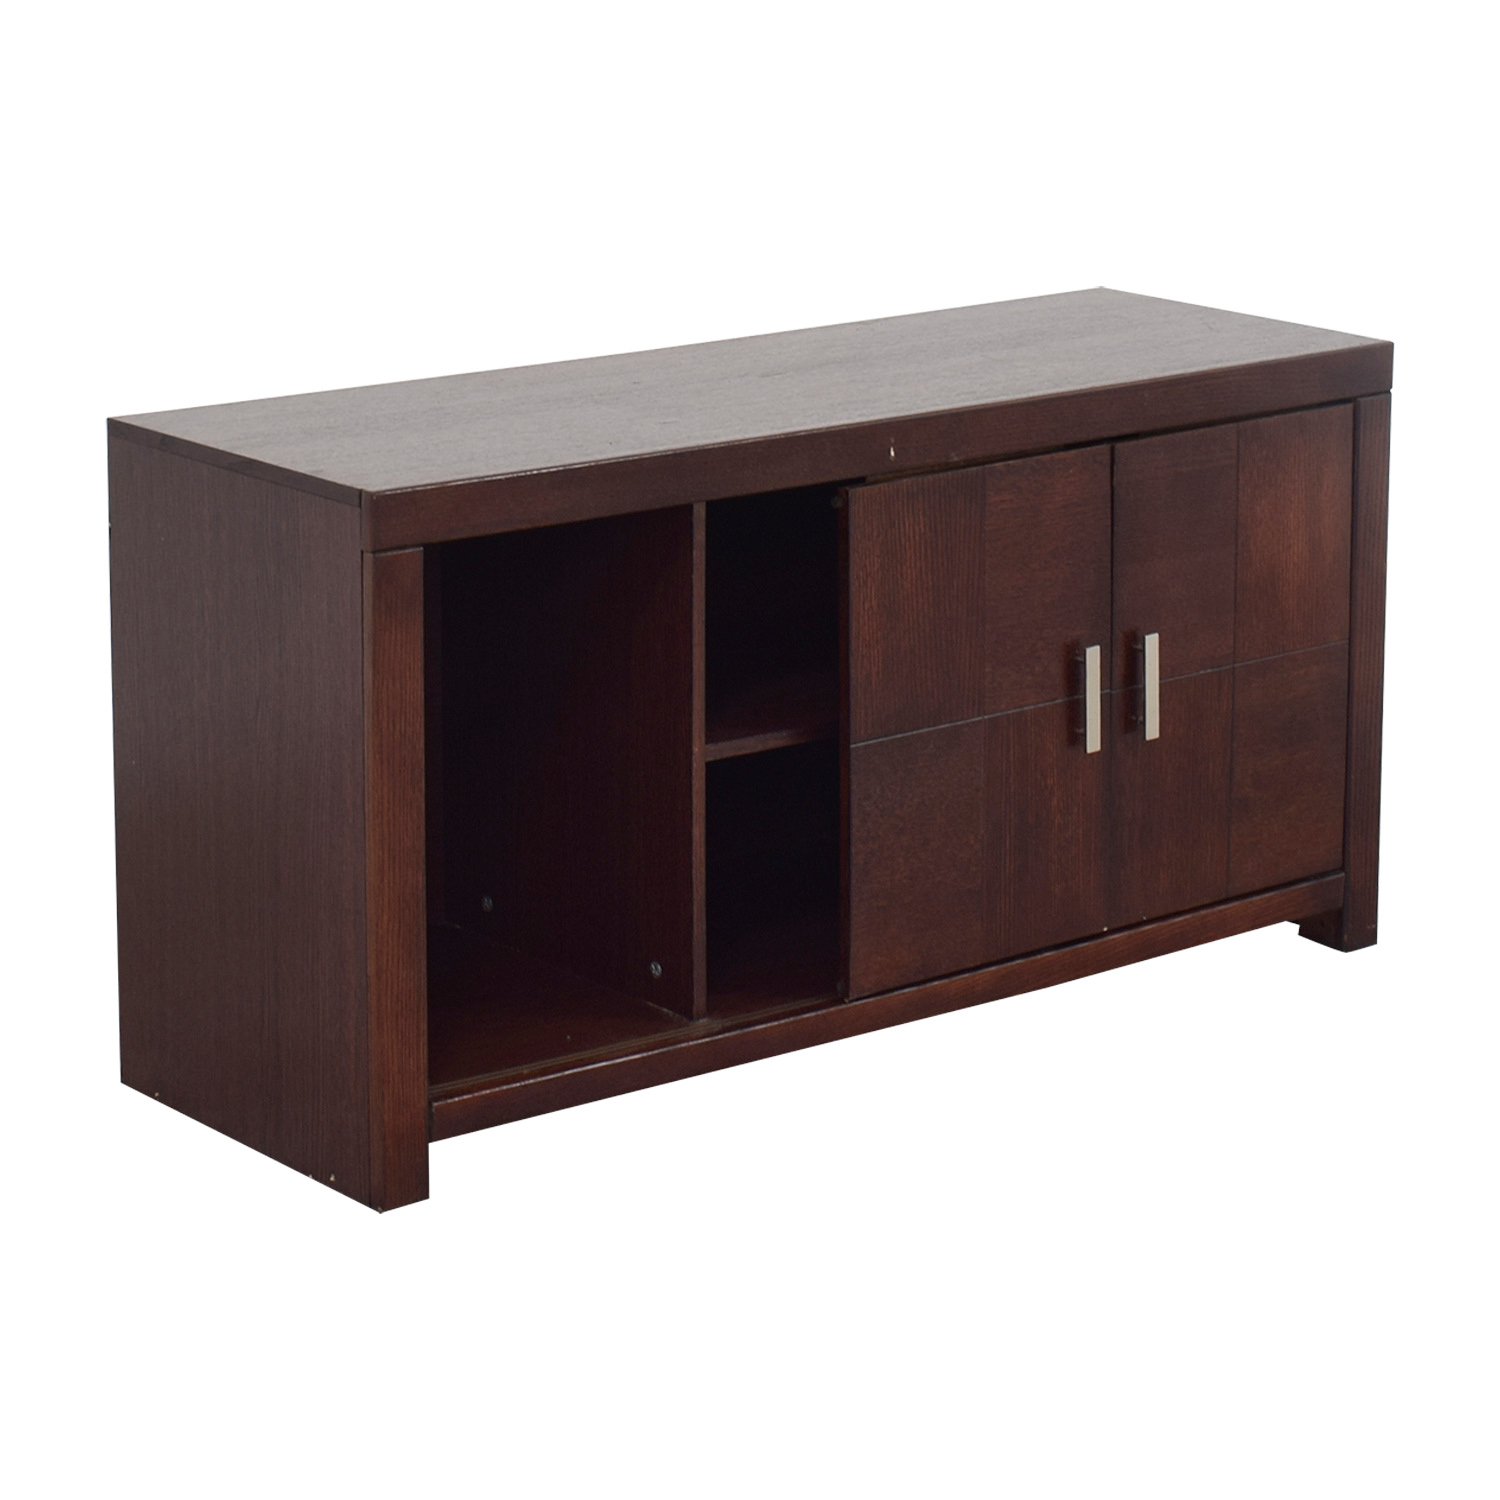 go tv shop room to online stand rooms sell off stands storage